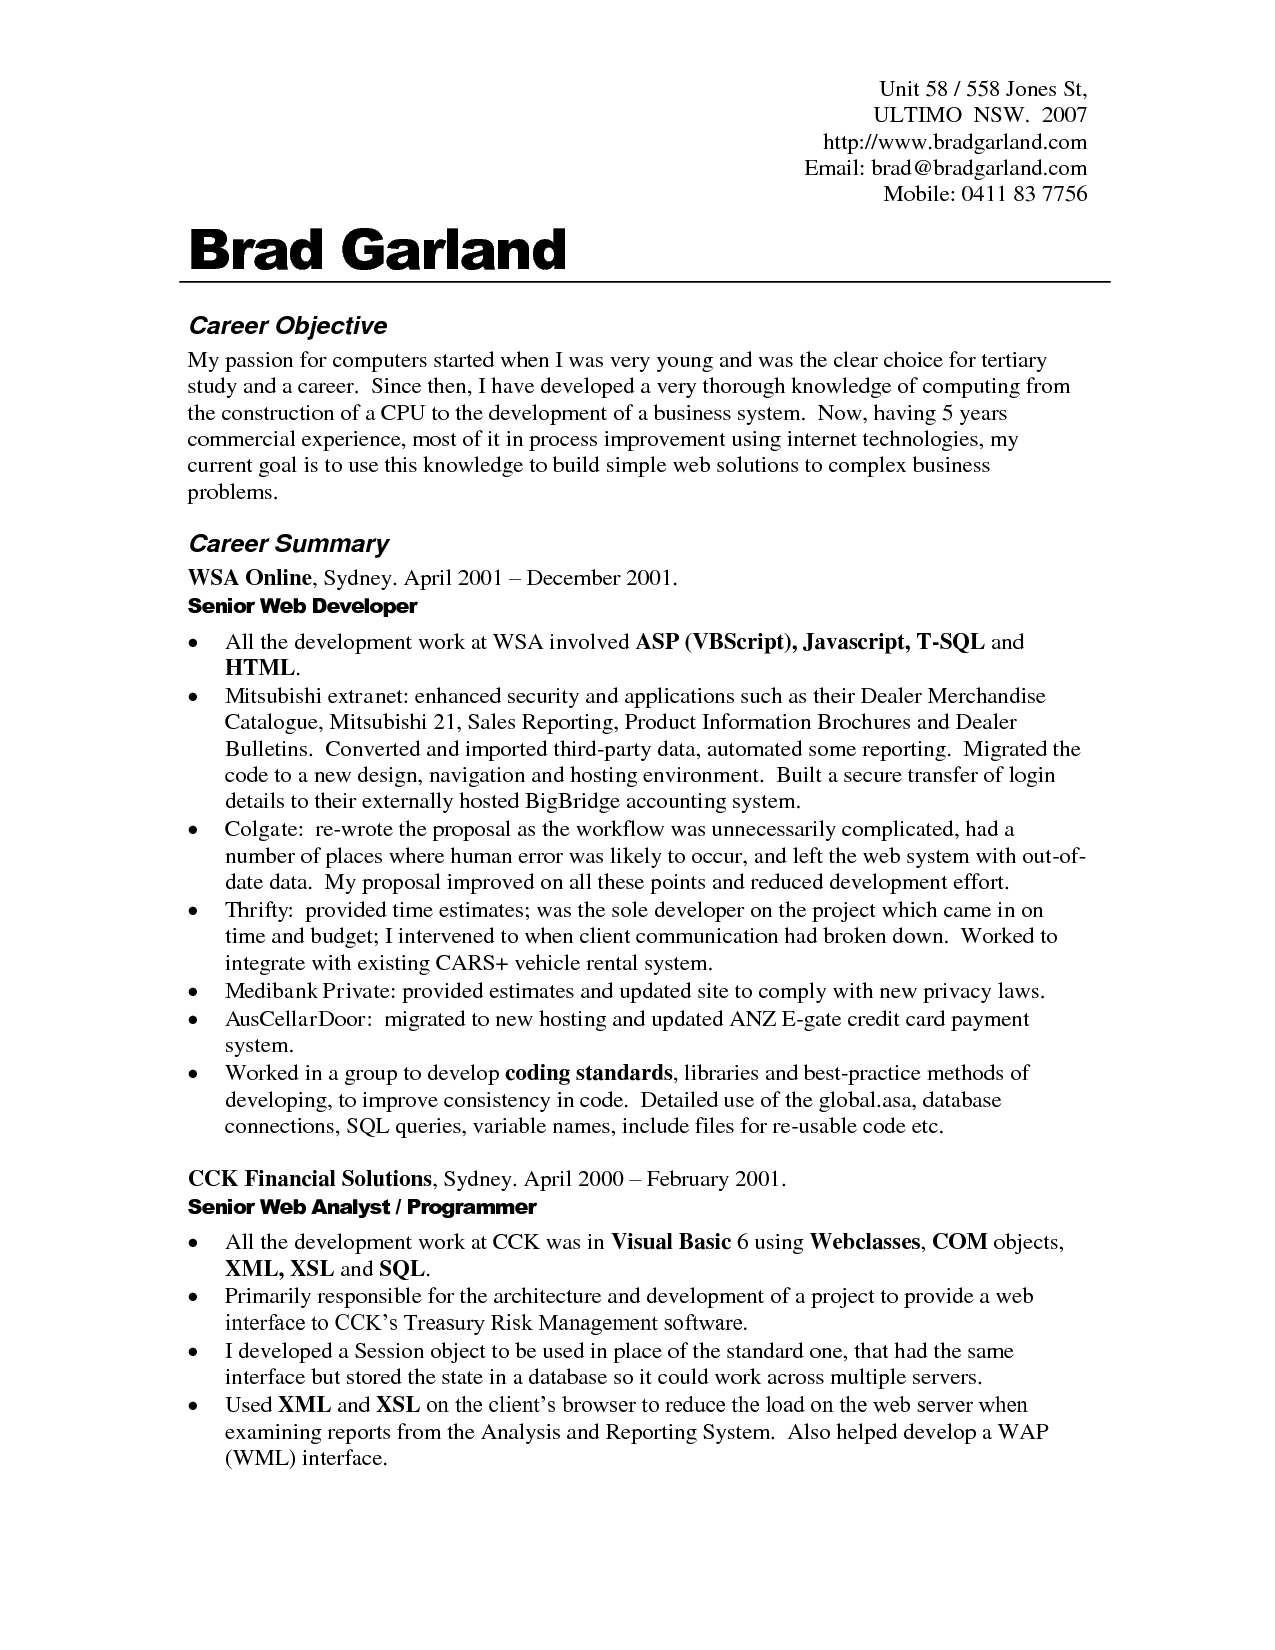 Excellent Objective Statement For Resume How To Write Career Objective With Sample